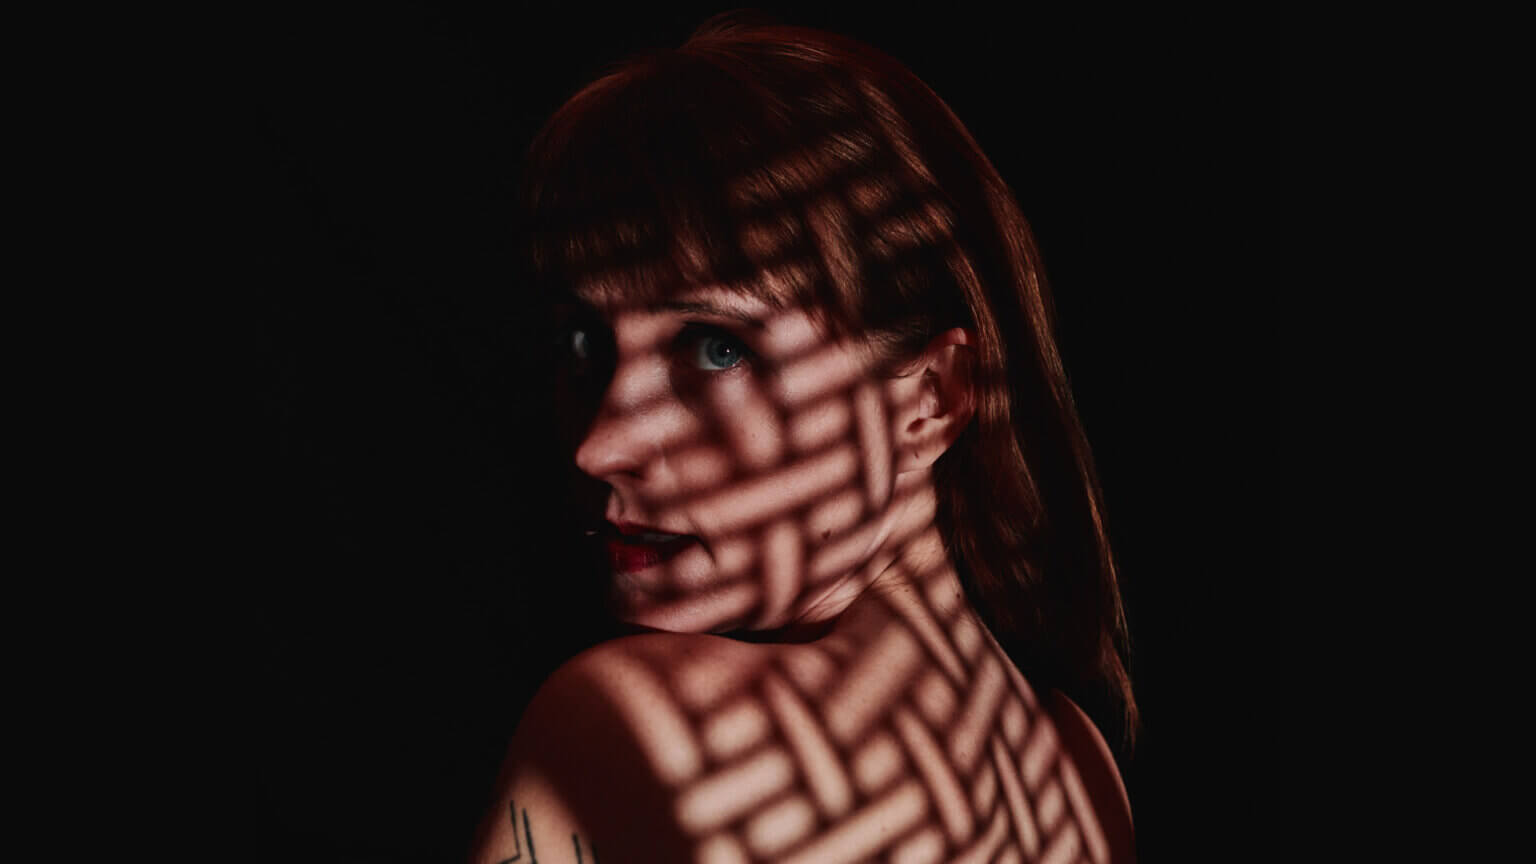 """Flock of Dimes, the project of Wye Oak's Jenn Wasner has shared """"Price of Blue"""" the second single off her forthcoming release Head of Roses"""